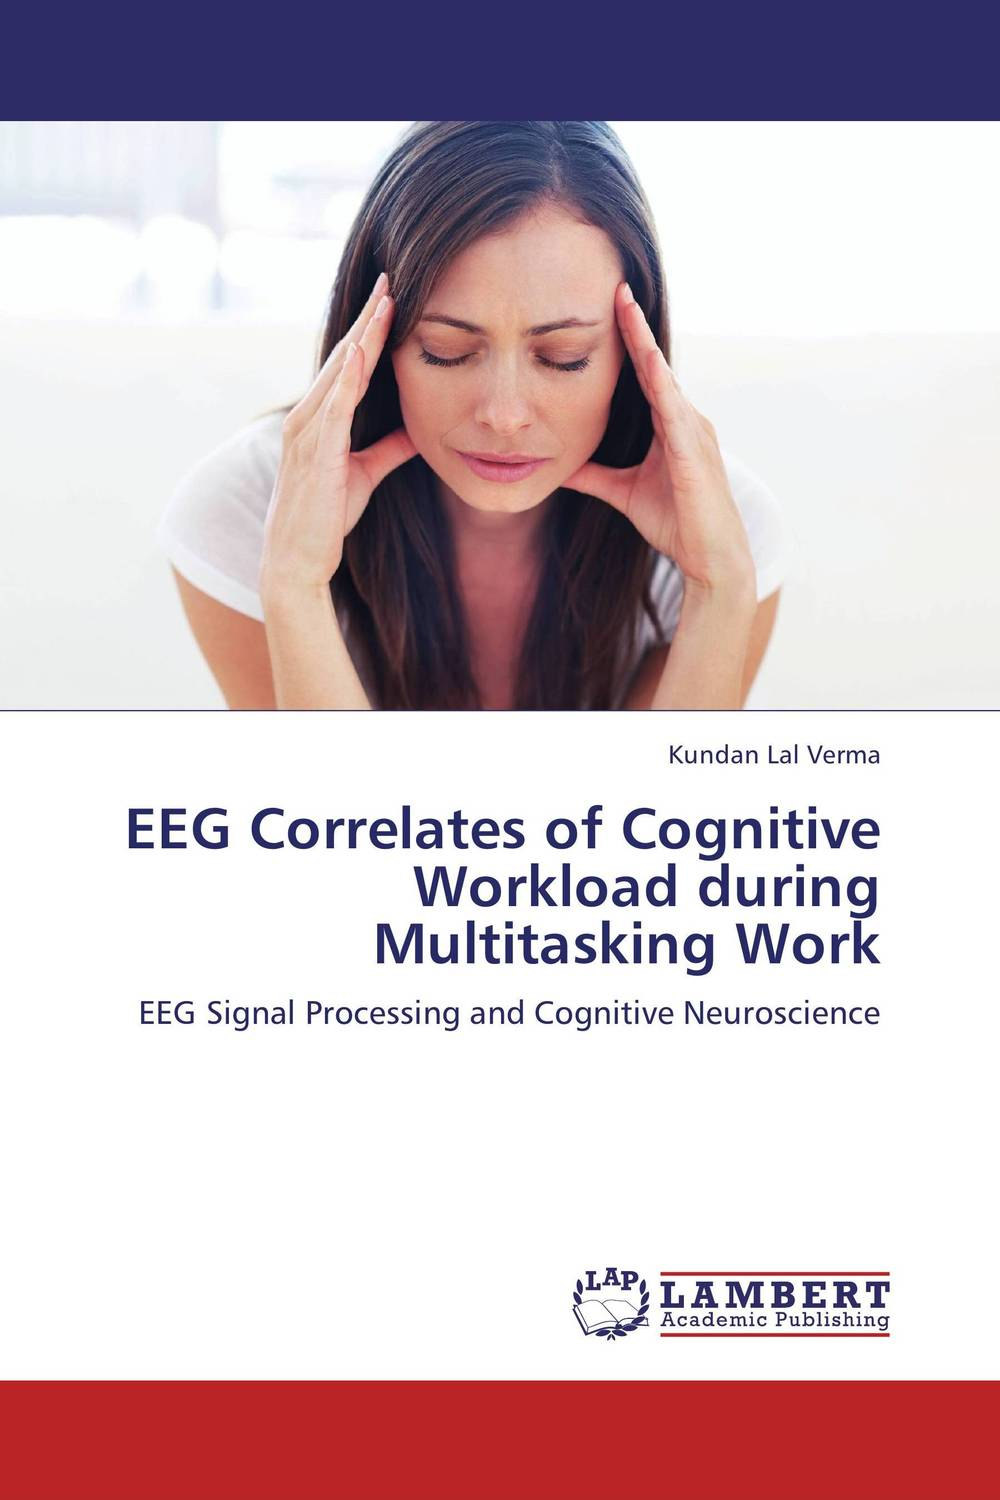 EEG Correlates of Cognitive Workload during Multitasking Work practical manual on applied mathematics